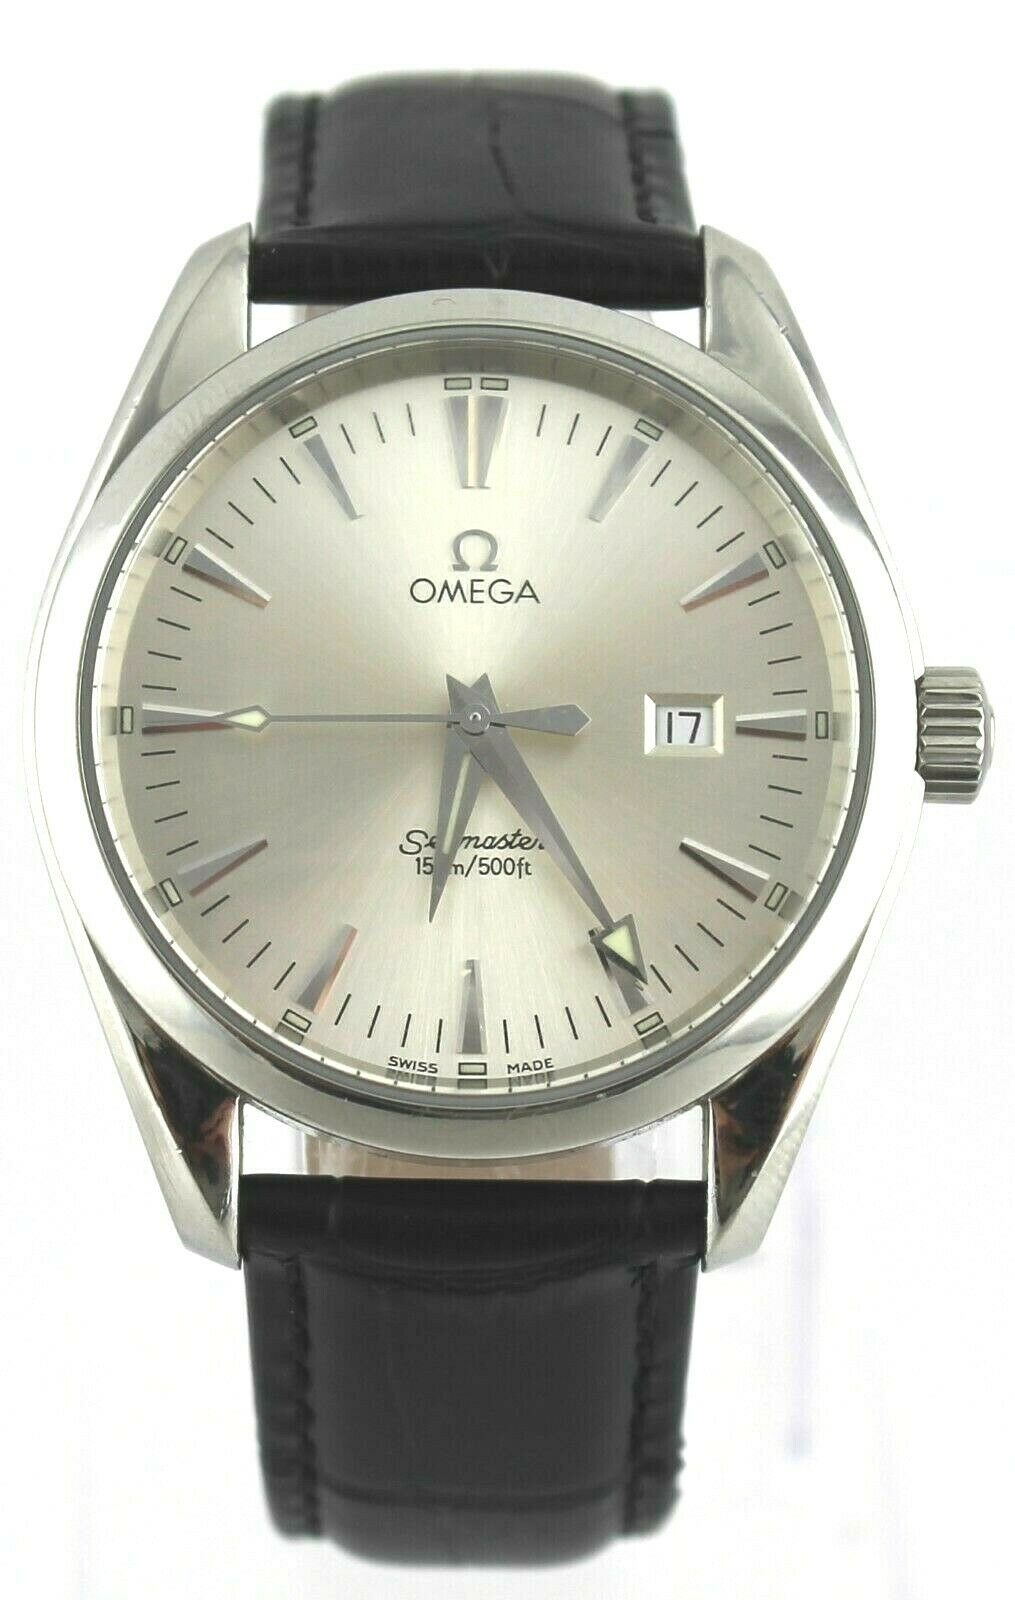 OMEGA SEAMASTER AQUA TERRA 2517.30 SILVER BLACK LEATHER SWISS QUARTZ MENS WATCH